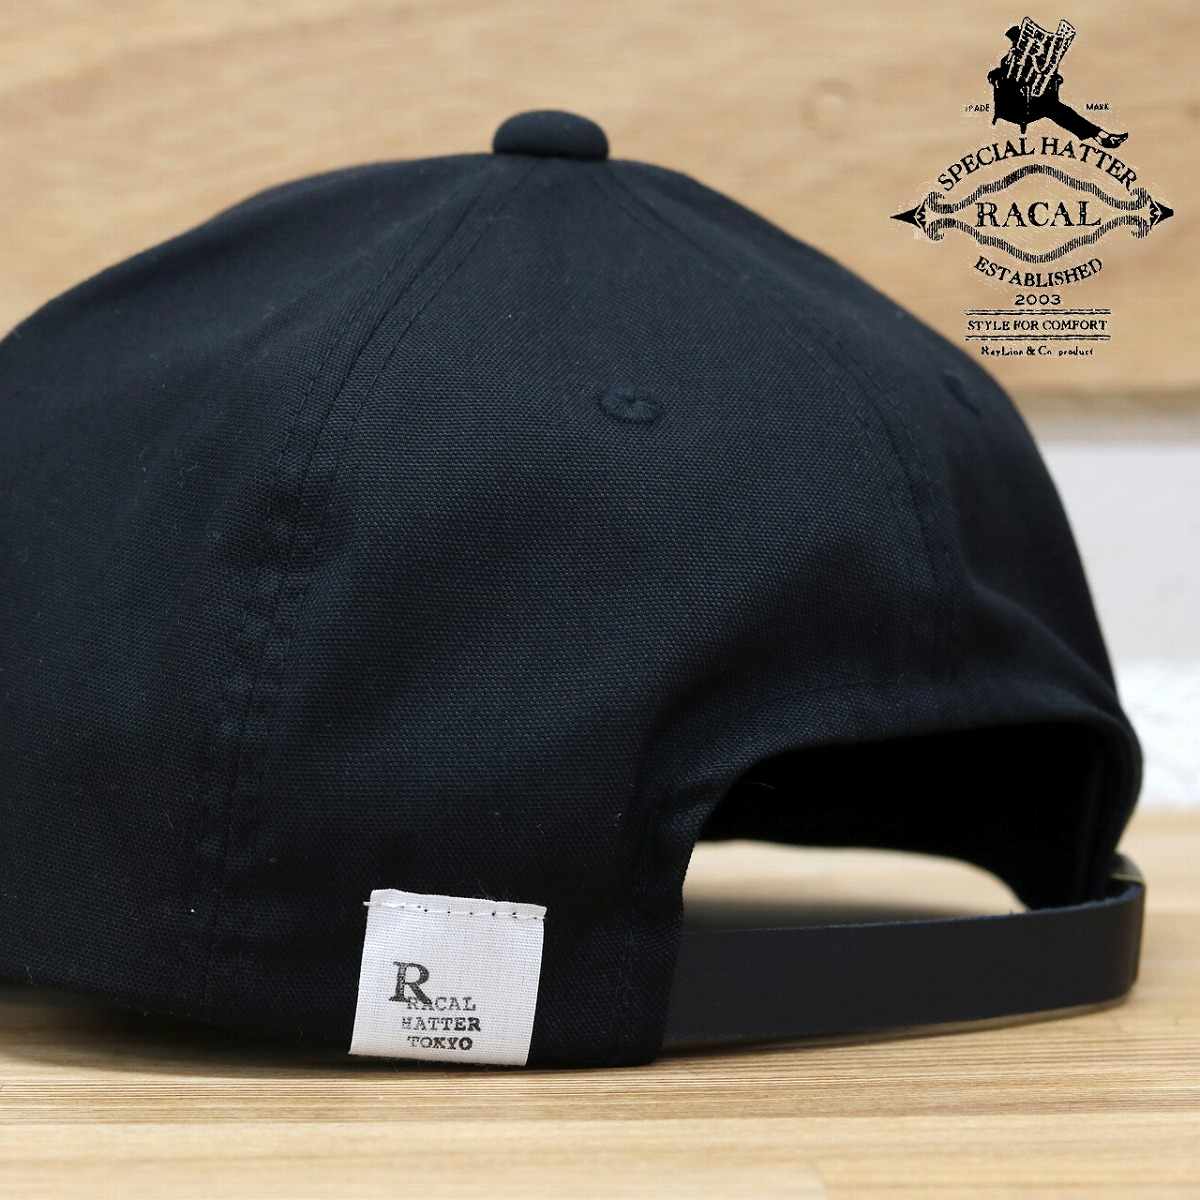 It is racal cap Lady s   black black  umpire cap  adjustable size gift  present ... 1136a4ef0701